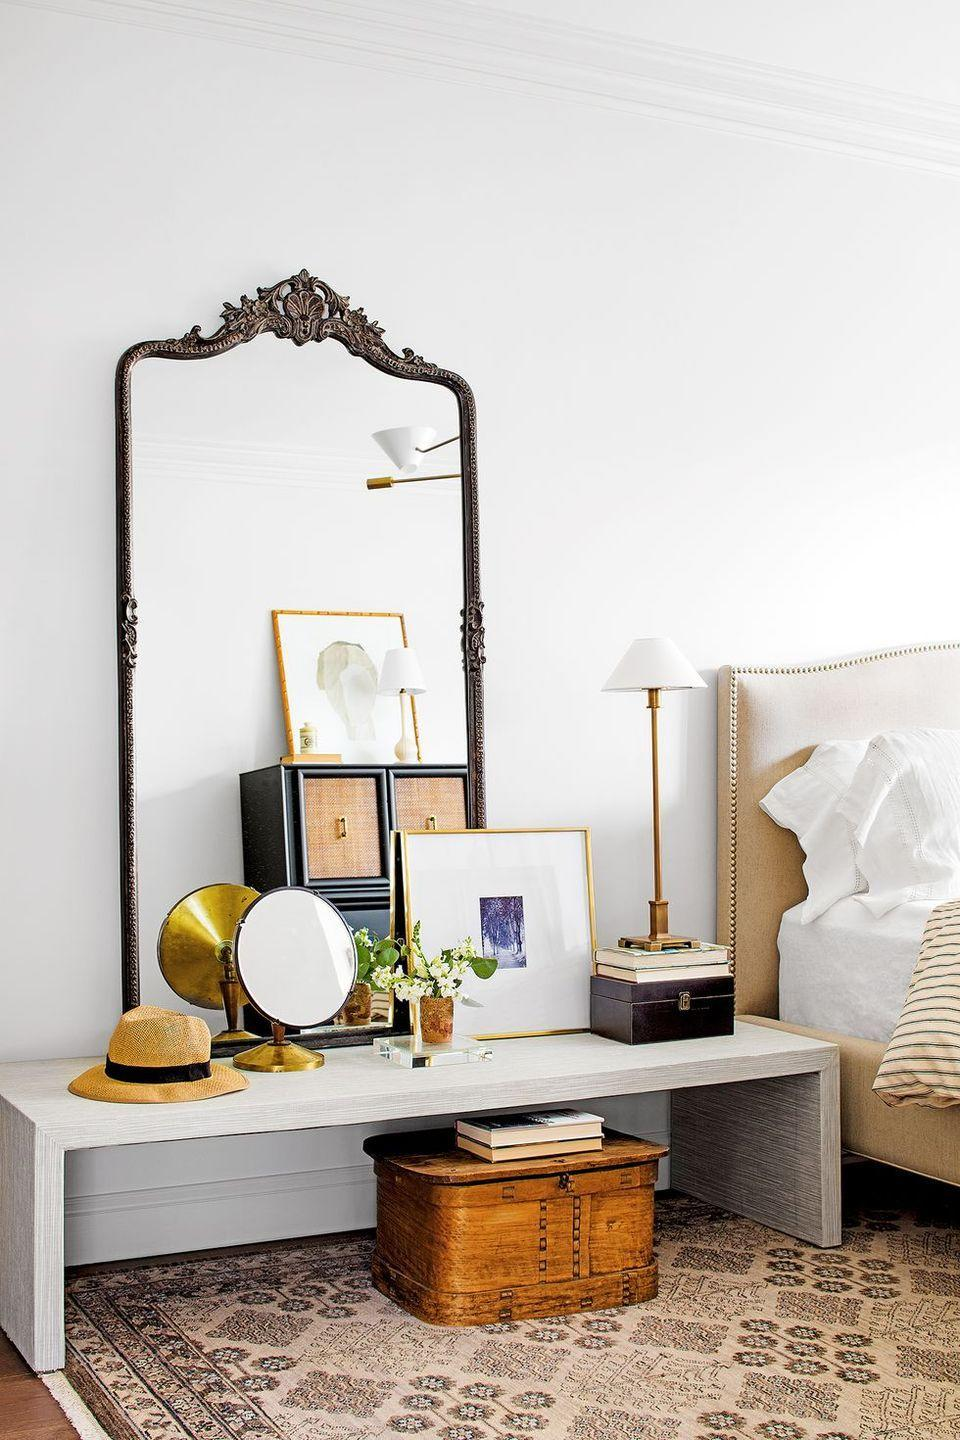 <p>Achieve a relaxed look by swapping a traditional nightstand for a low-lying console table.</p>